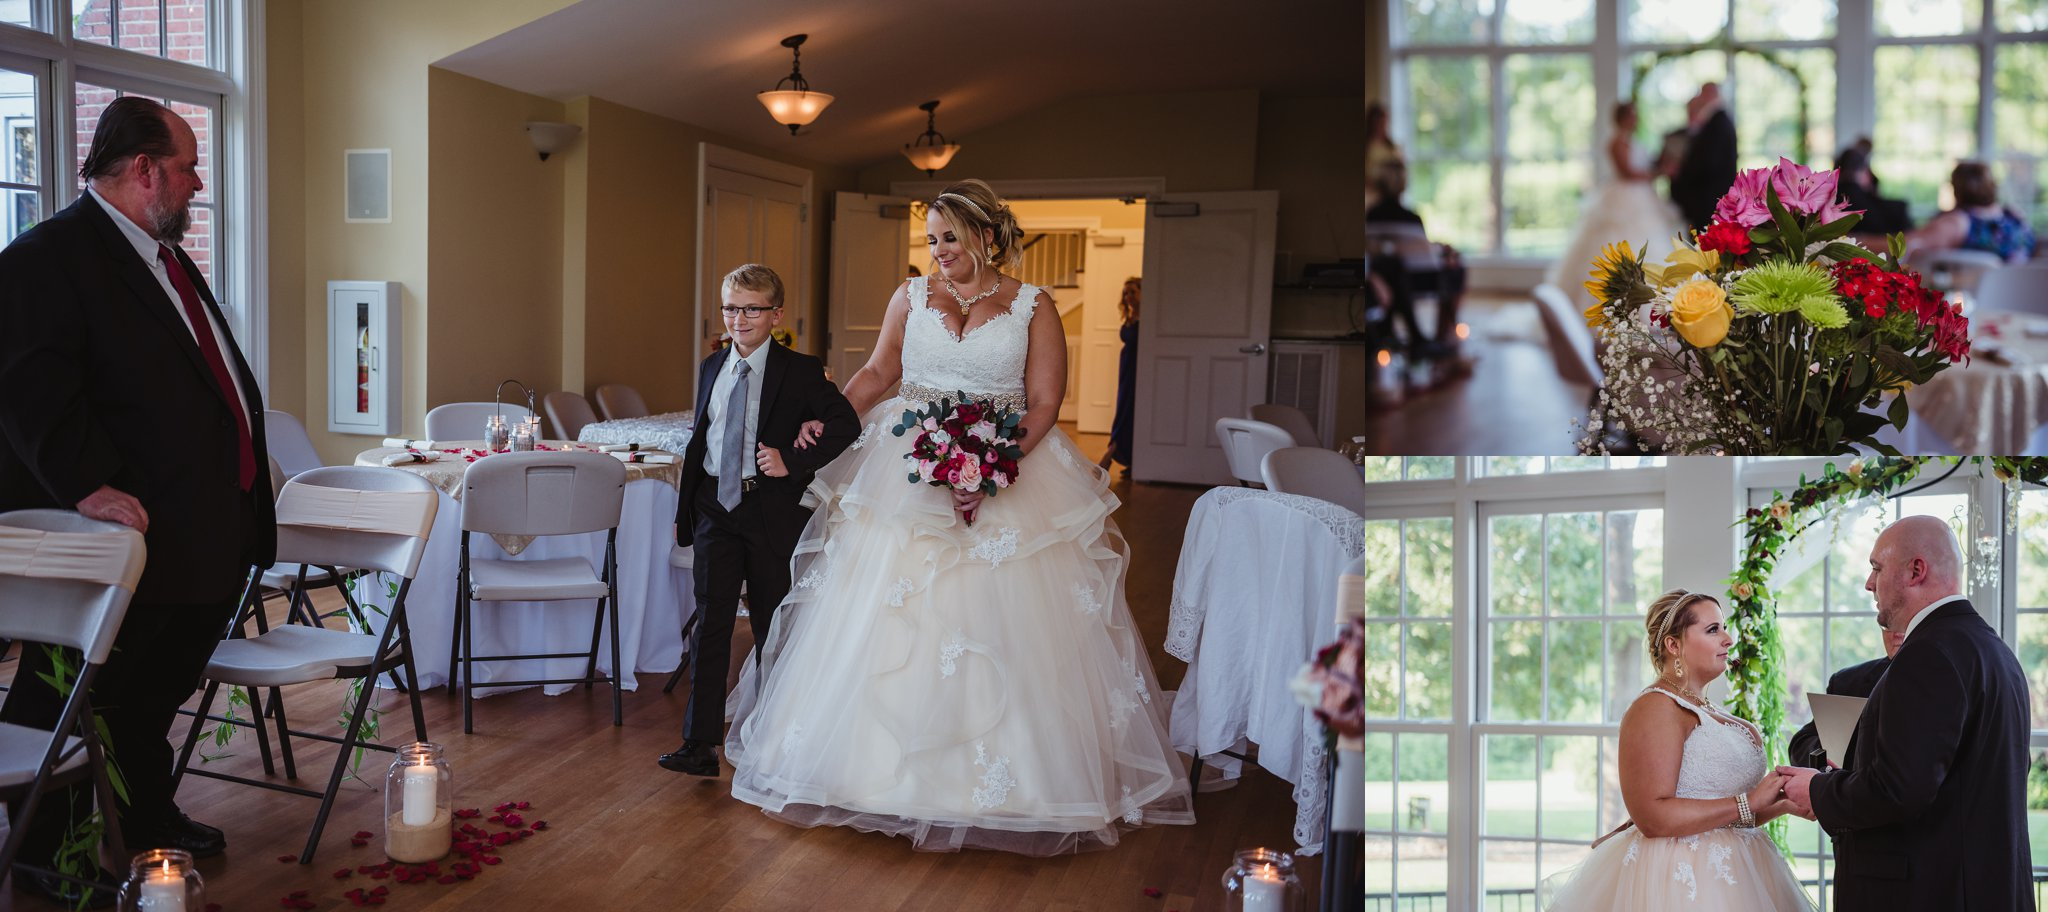 The bride had her son walk her down the aisle at her wedding at the Rand-Bryan House in Raleigh, photos by Rose Trail Images.